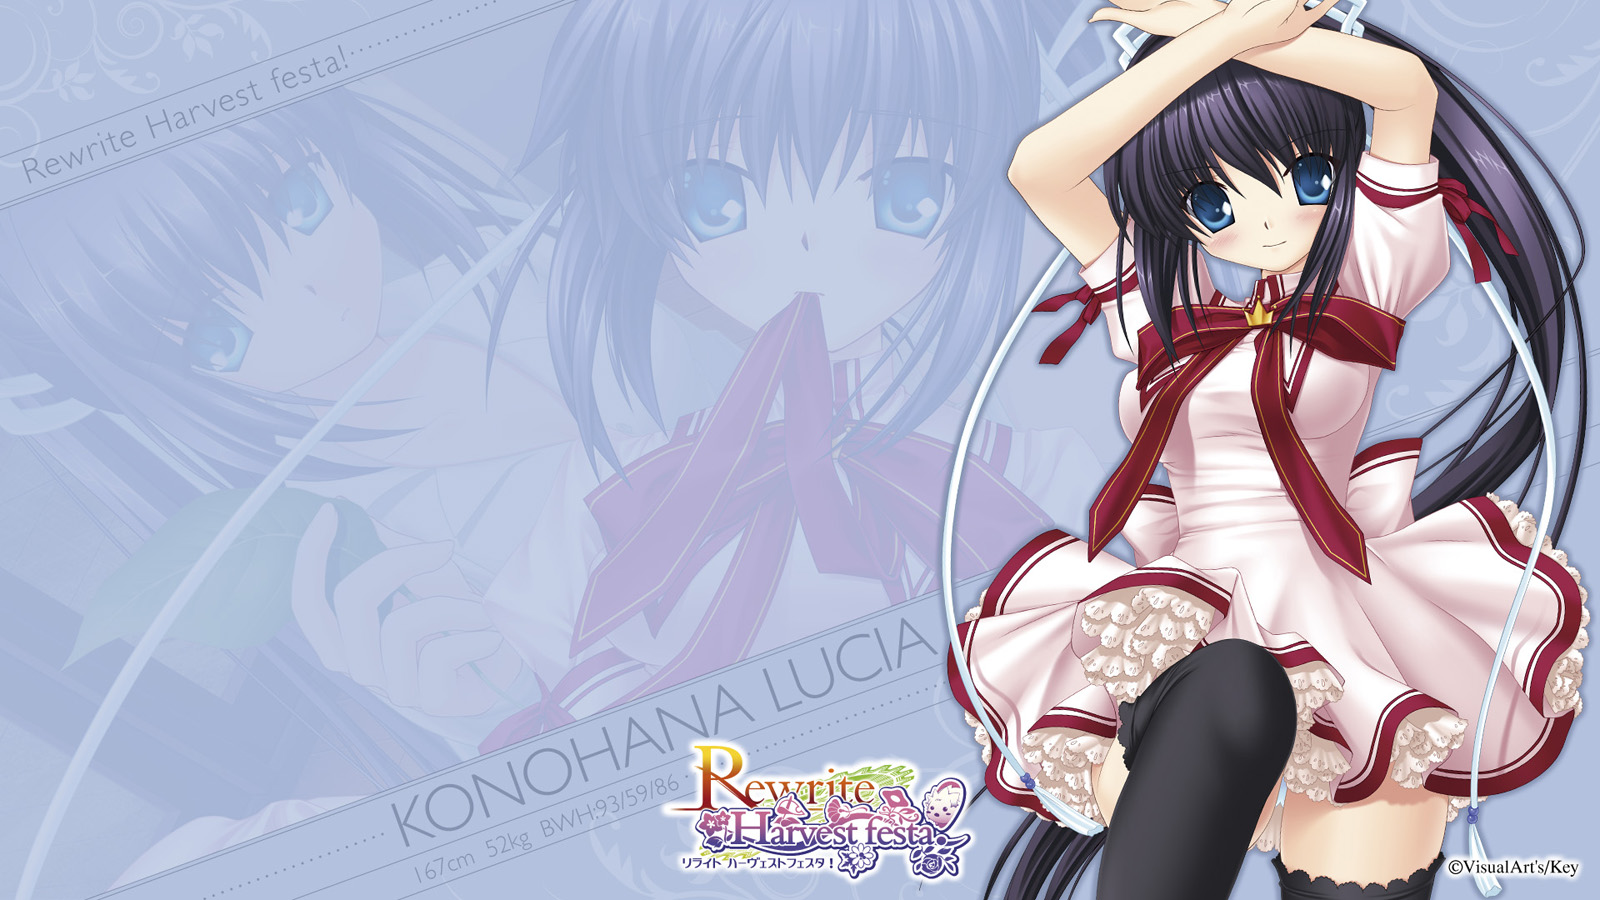 rewrite_lucia_wallpaper_1600.jpg